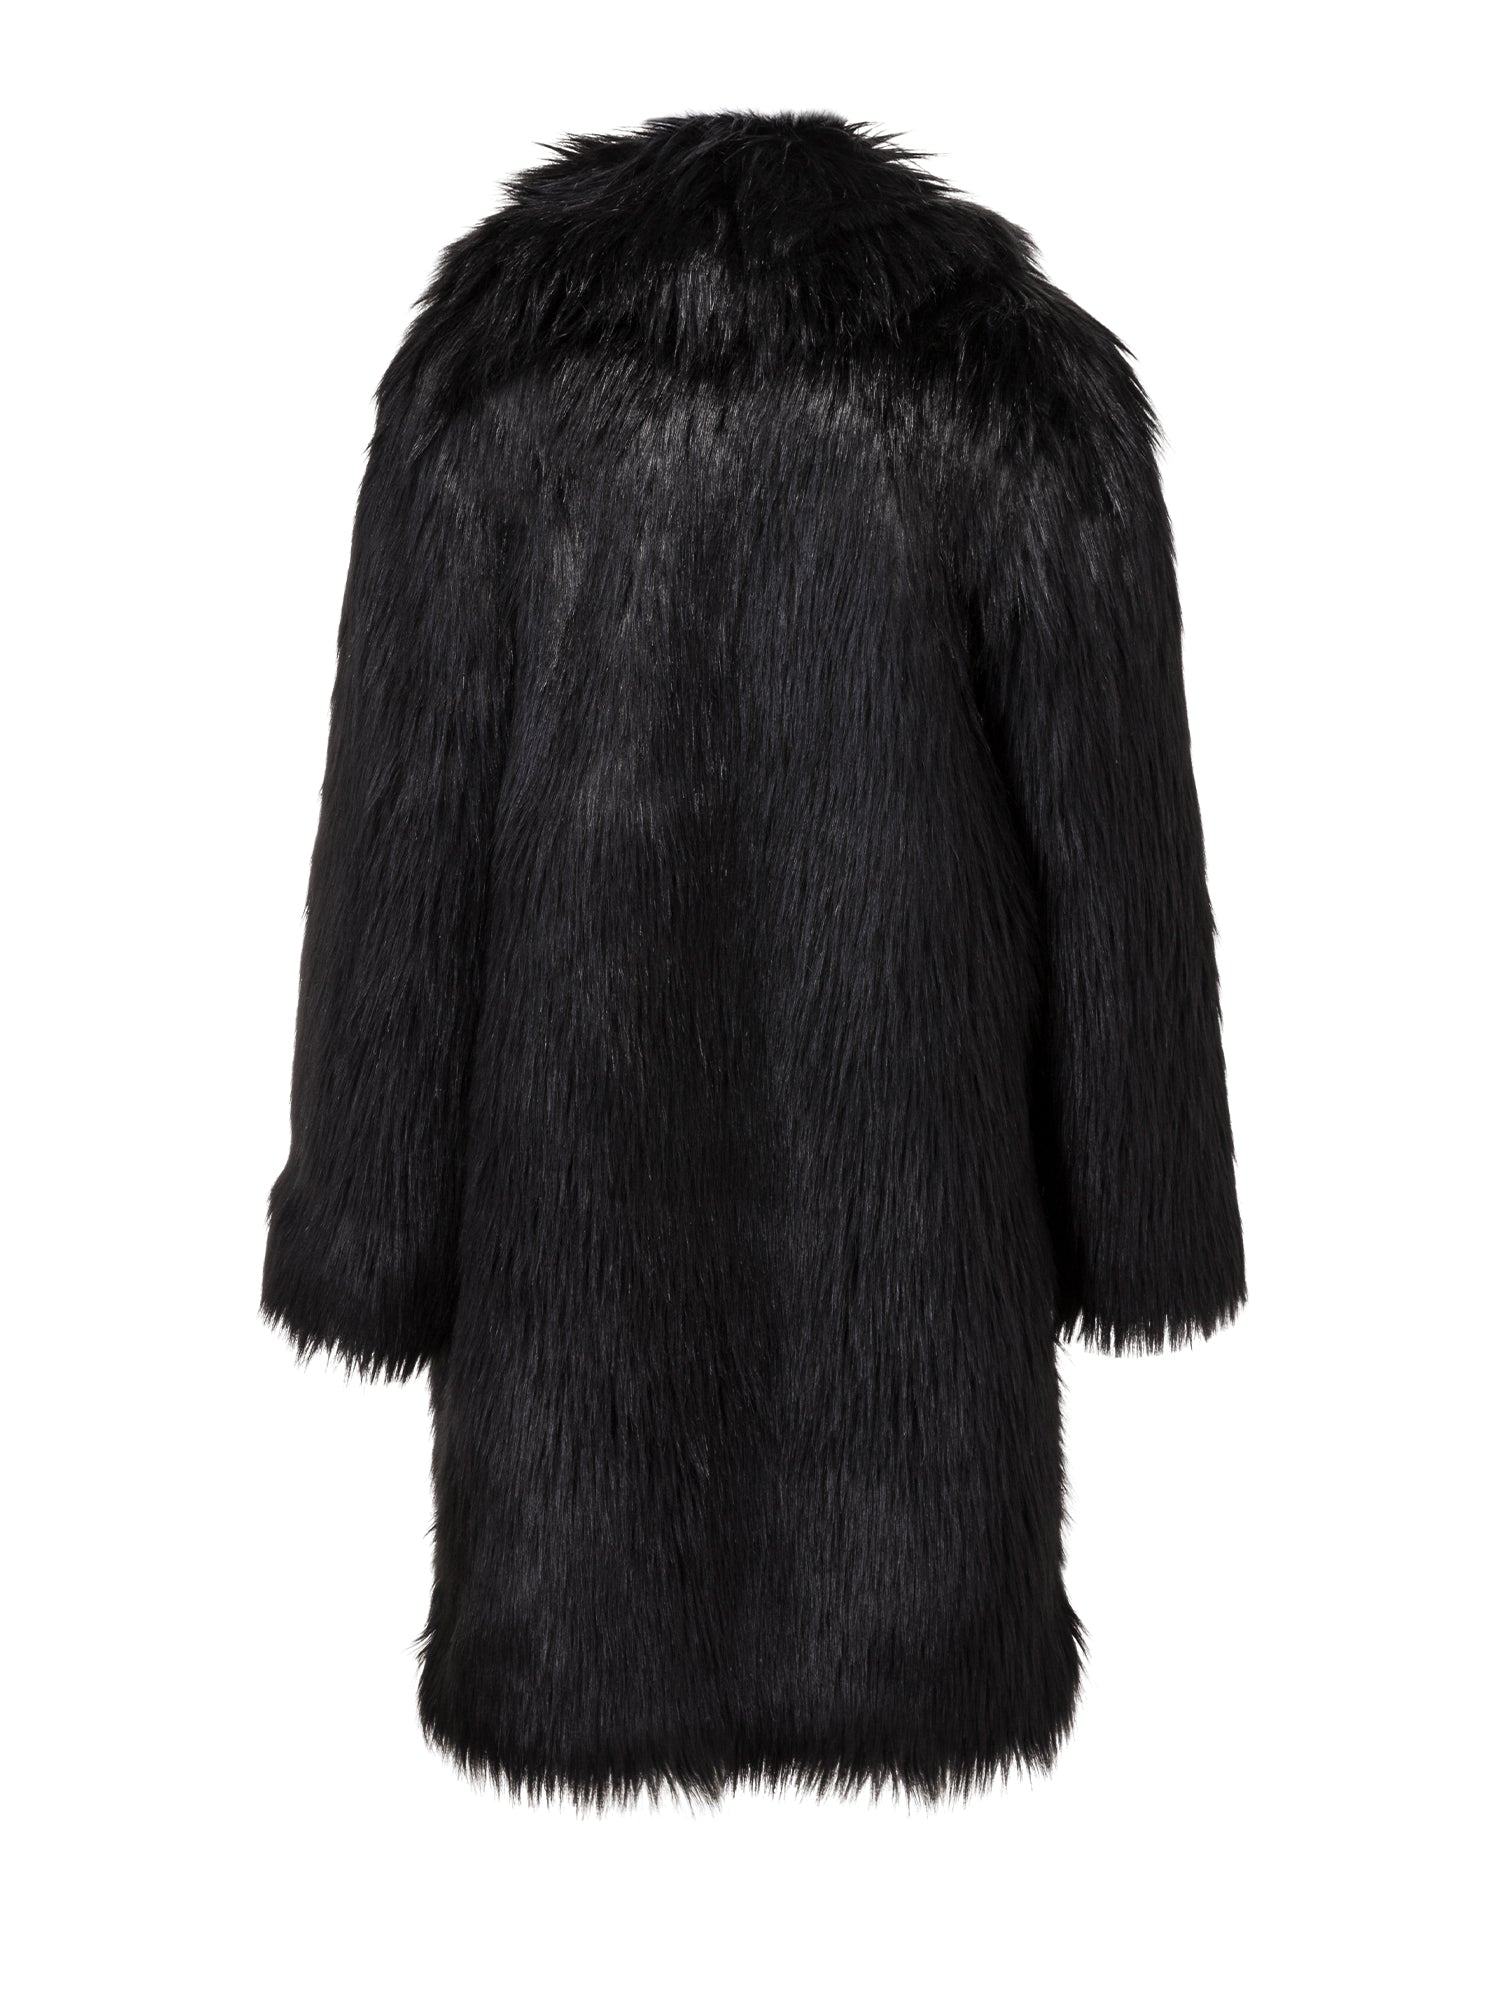 A Packshot Of Marei1998's Datura Long Faux Fur Coat In Black Color. Featuring A Slight A-Lined Silhouette, It Is Made From The Fluffiest Long Pile Faux Fur. Back View.